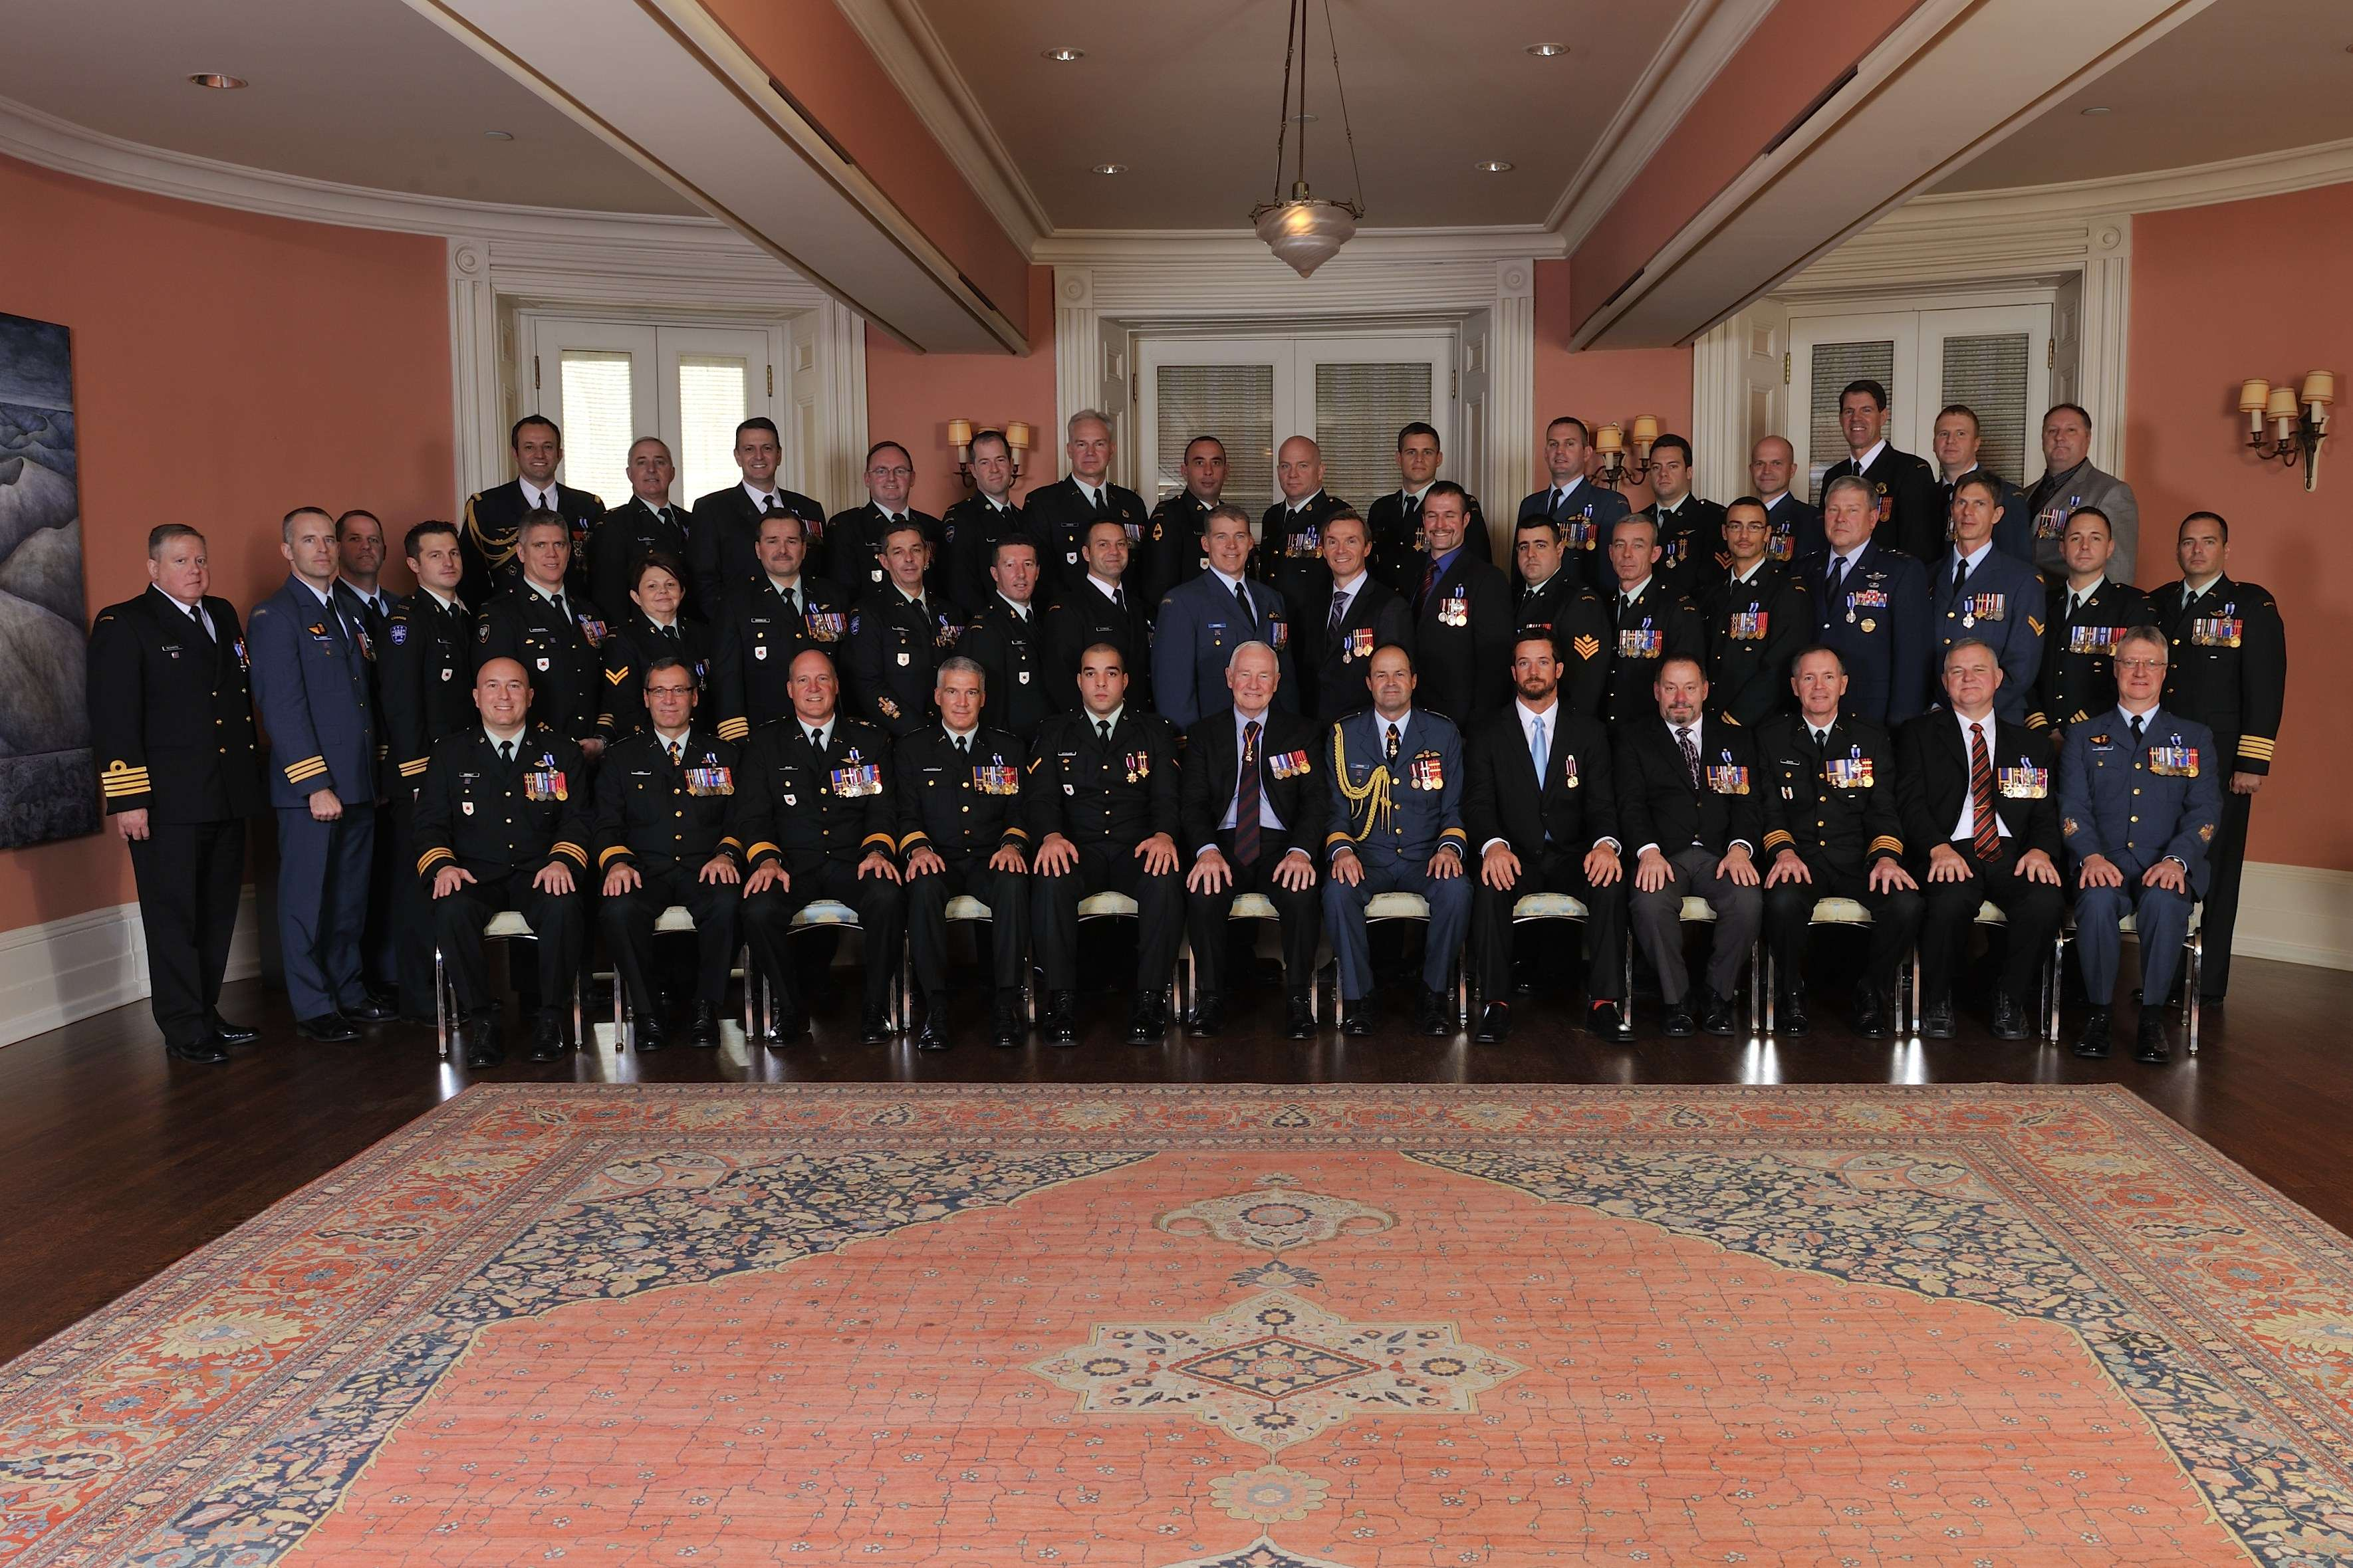 His Excellency the Right Honourable David Johnston, Governor General of Canada, and General Thomas Lawson, Chief of the Defence Staff, are pictured with the 45 recipients who were presented with military decorations.